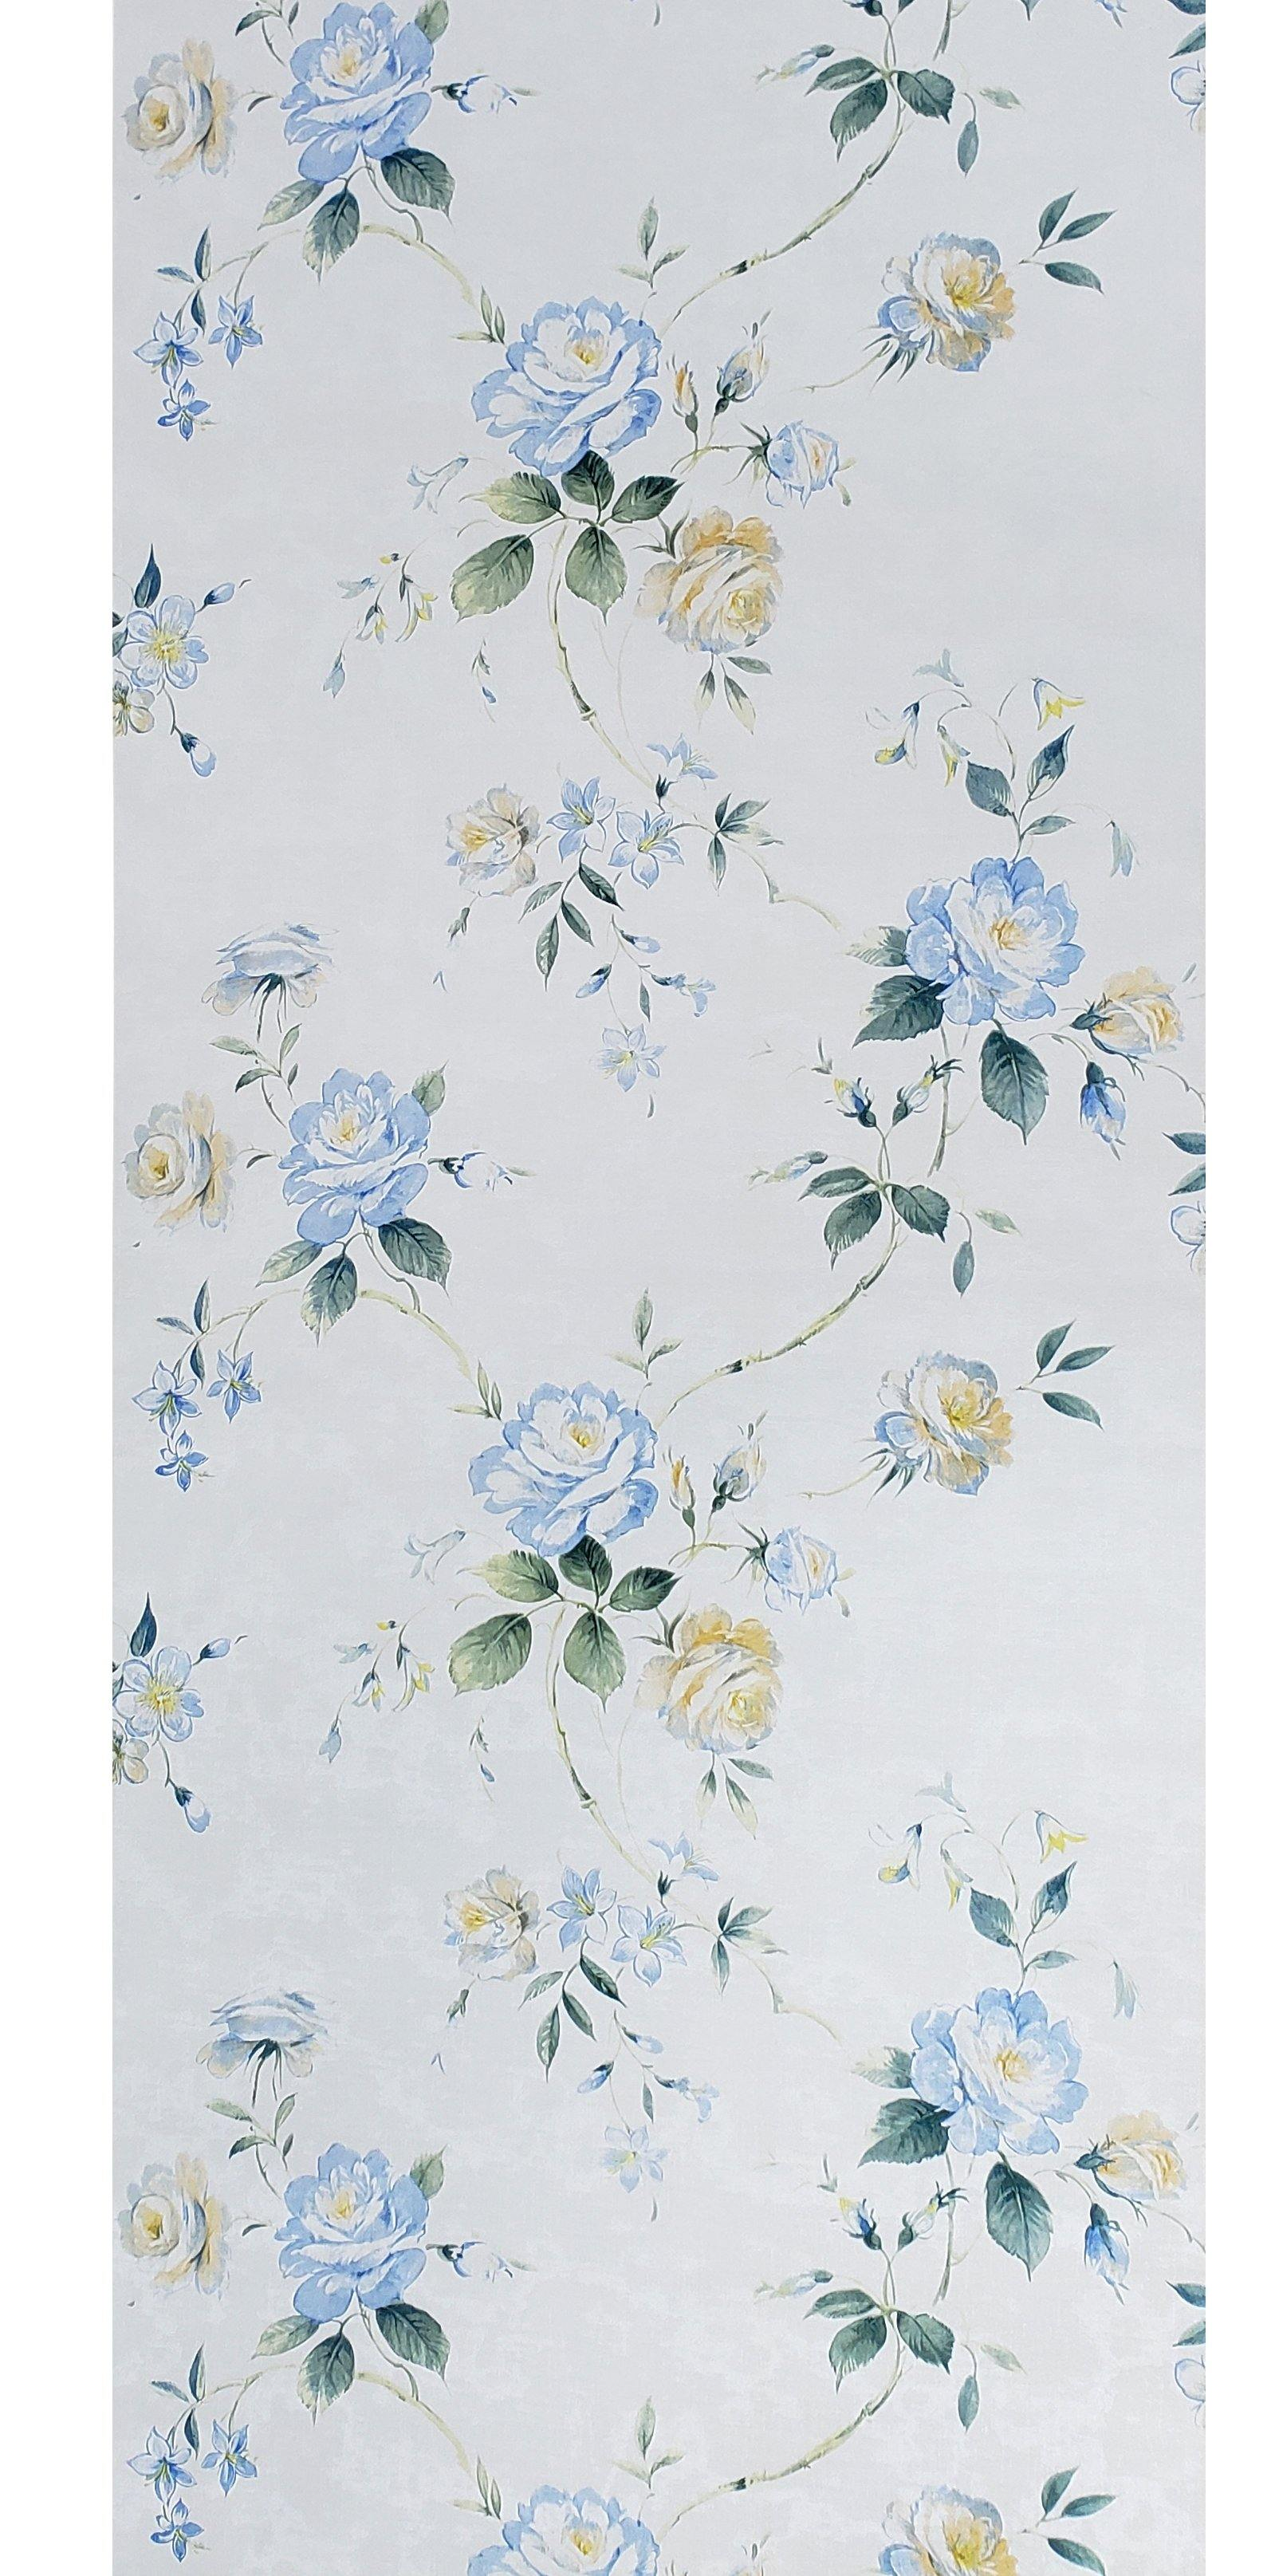 Wm7802601 Floral Wallpaper Roll Blue Flowers Rustic White Cream